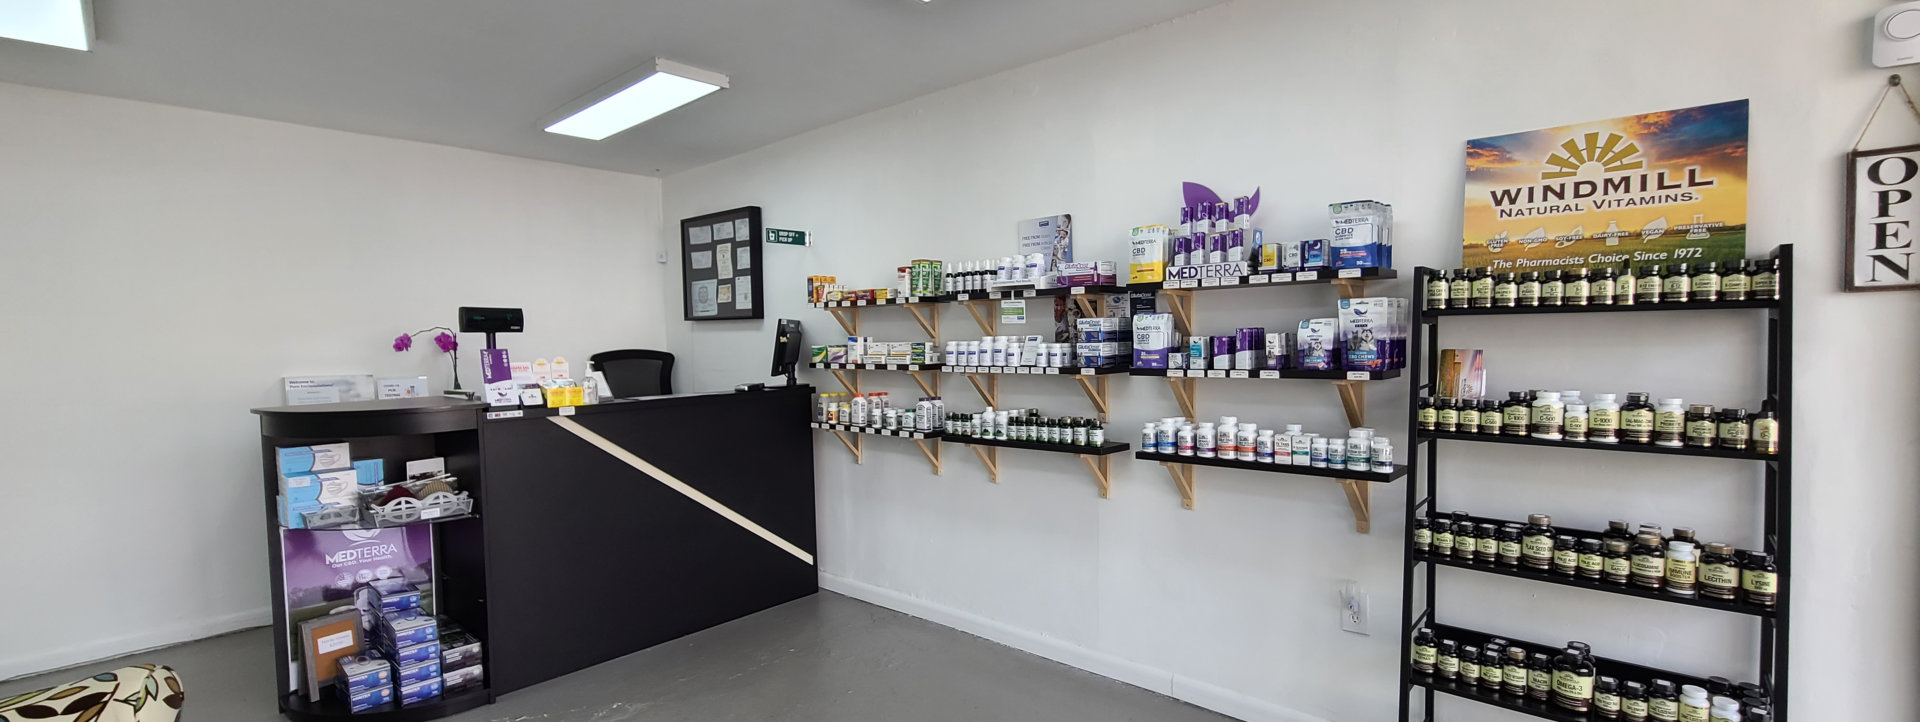 counter and shelves with medicines